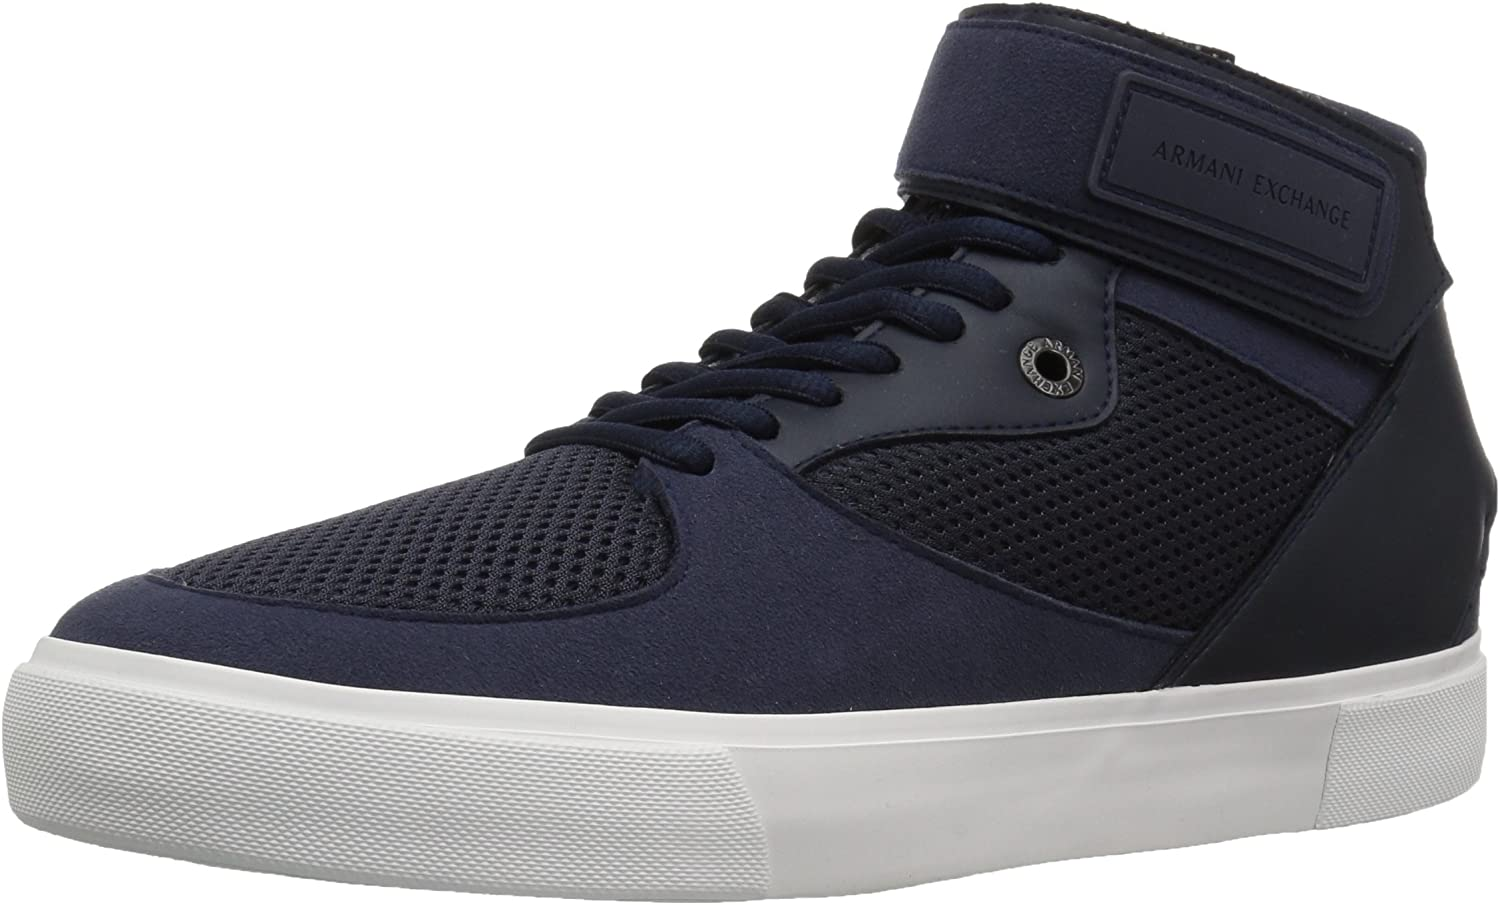 A X Armani Exchange Mens High Top Sneaker with Ankle Strap and Mesh Detail Sneaker